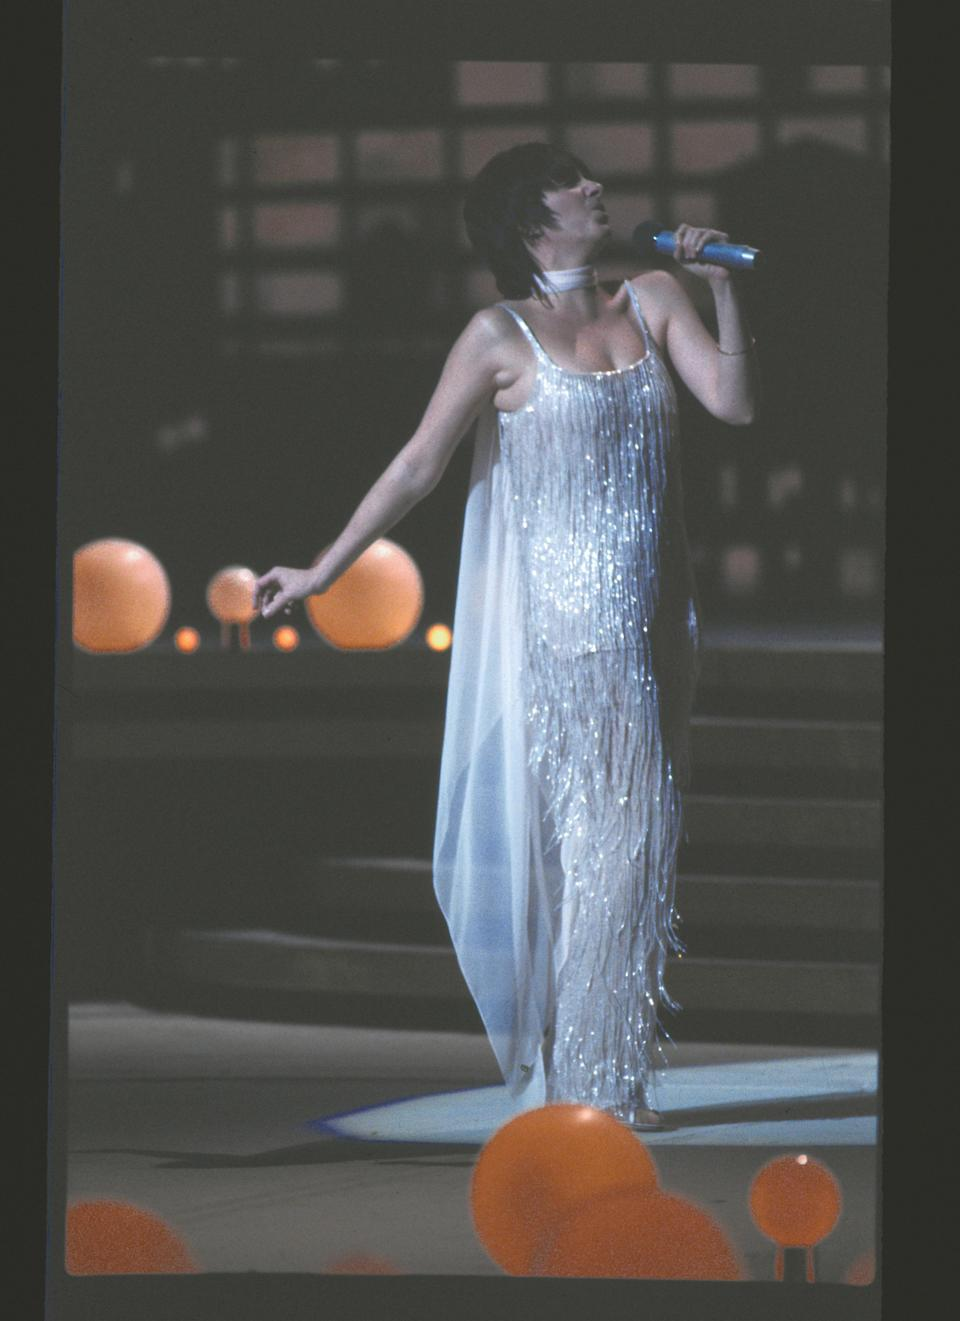 Minnelli rehearses on stage for Night of 100 Stars, 14 February 1982